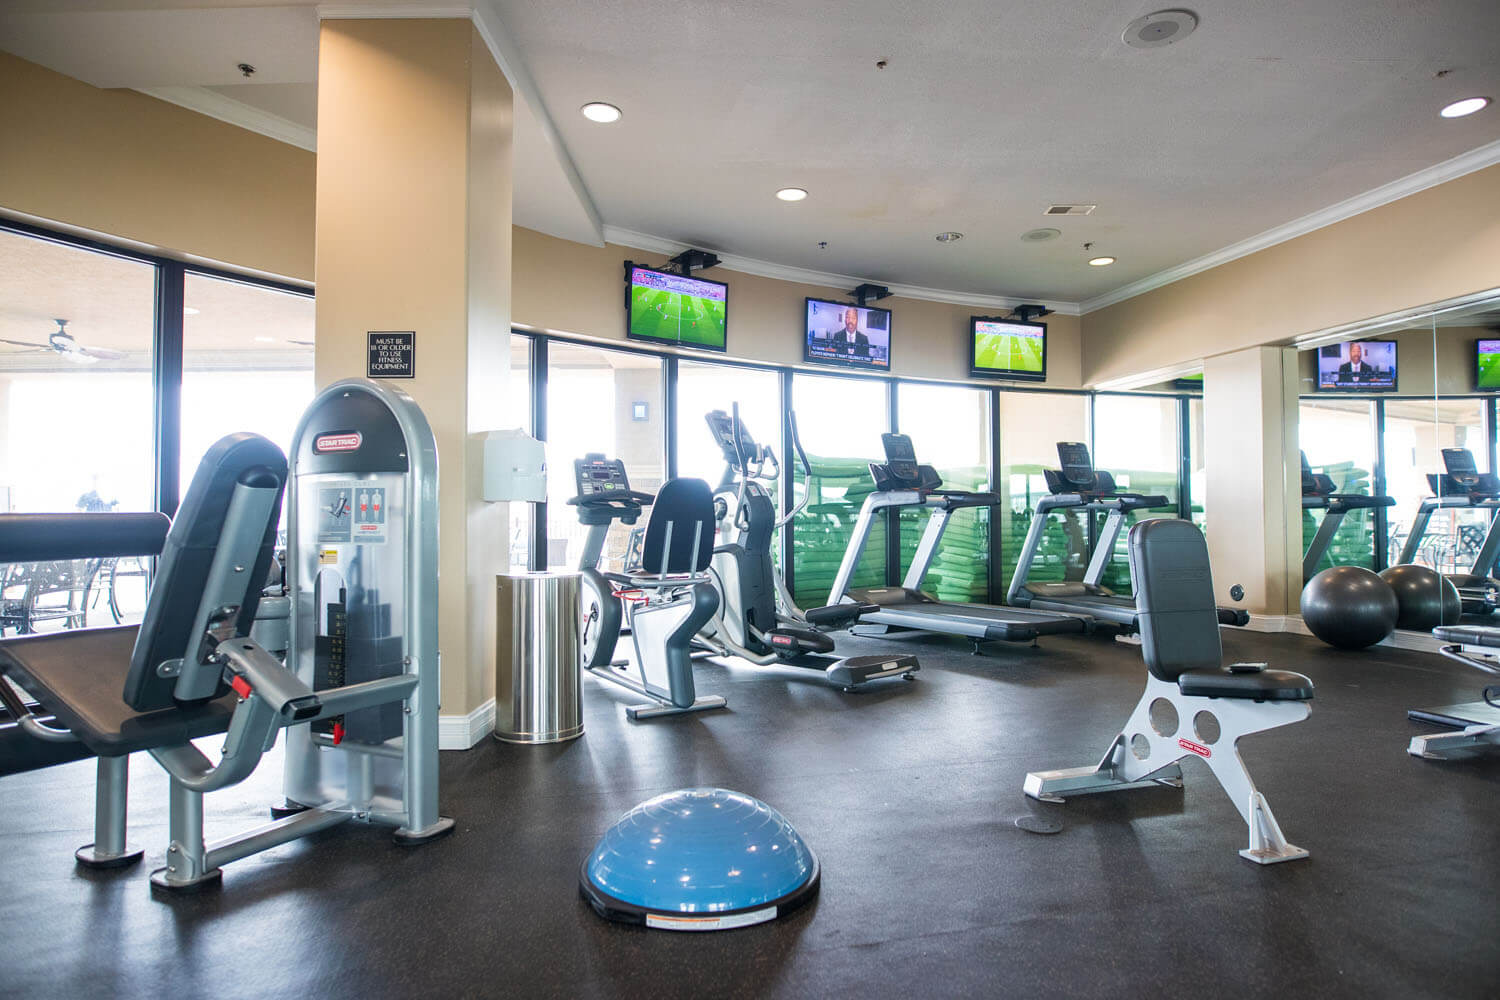 Fitness room at Camden on the Lake resort featuring exercise and cardio machines and televisions